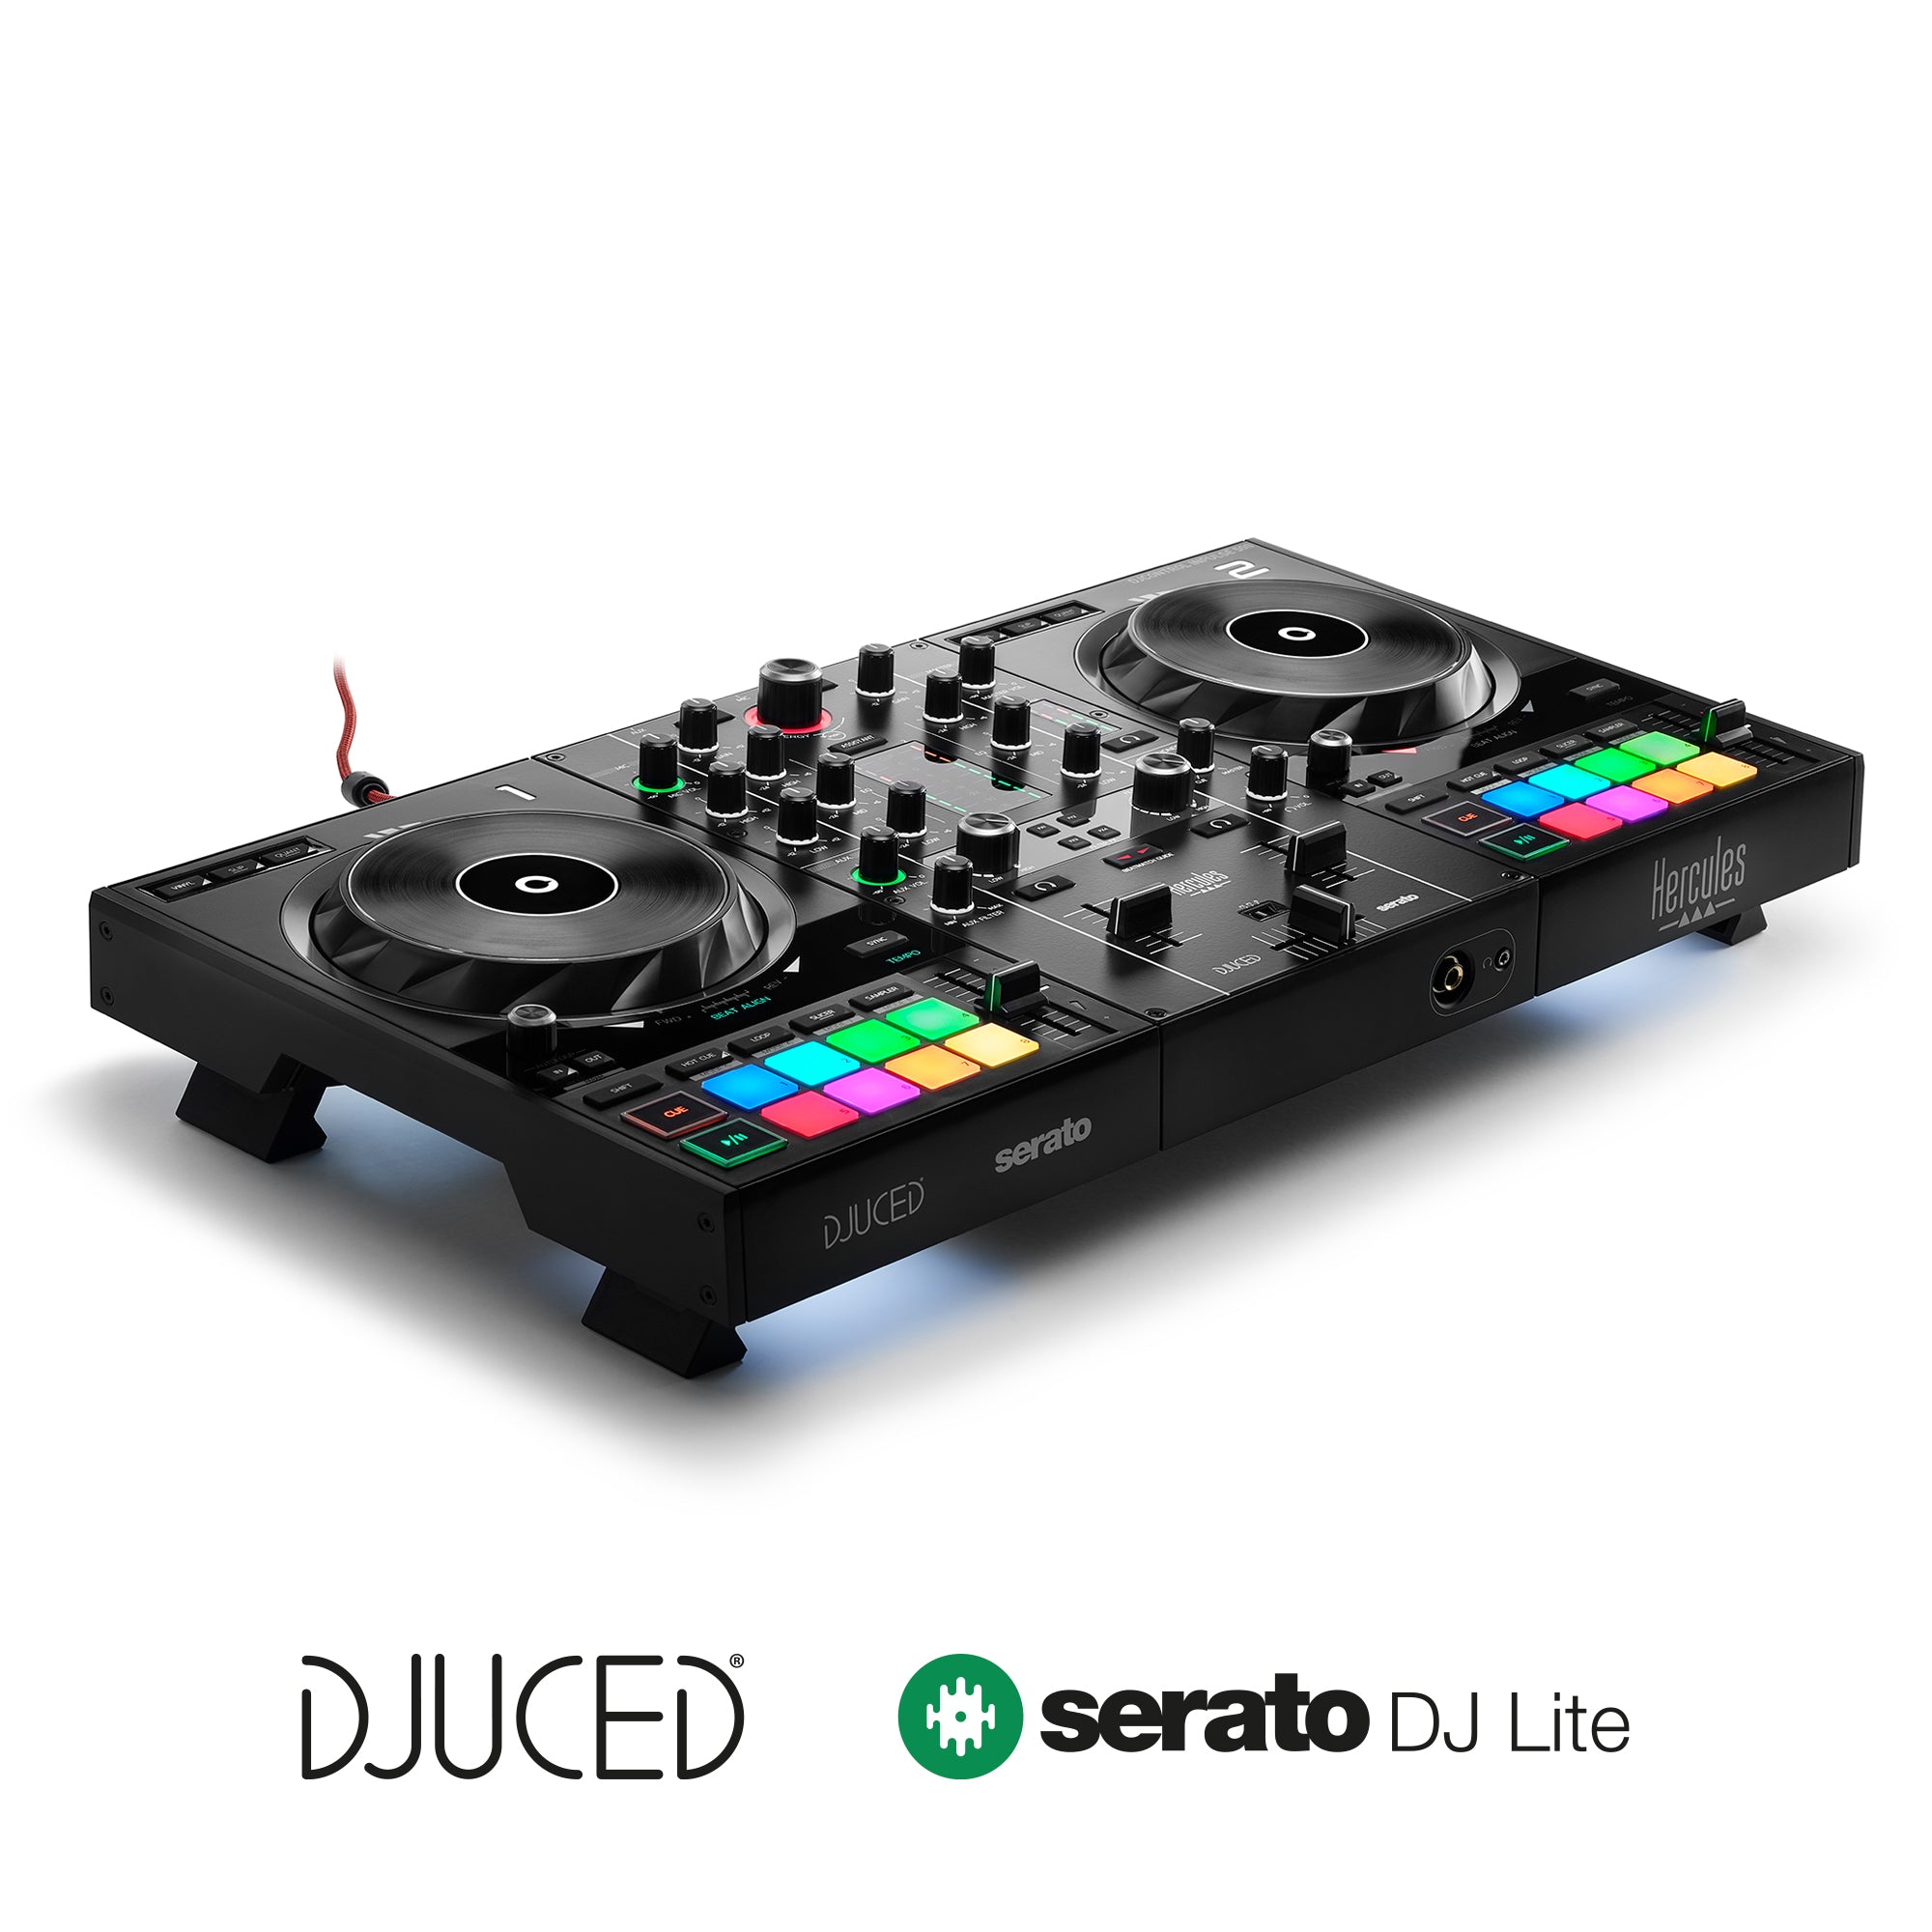 The Perfect DJ Controller For Beginners